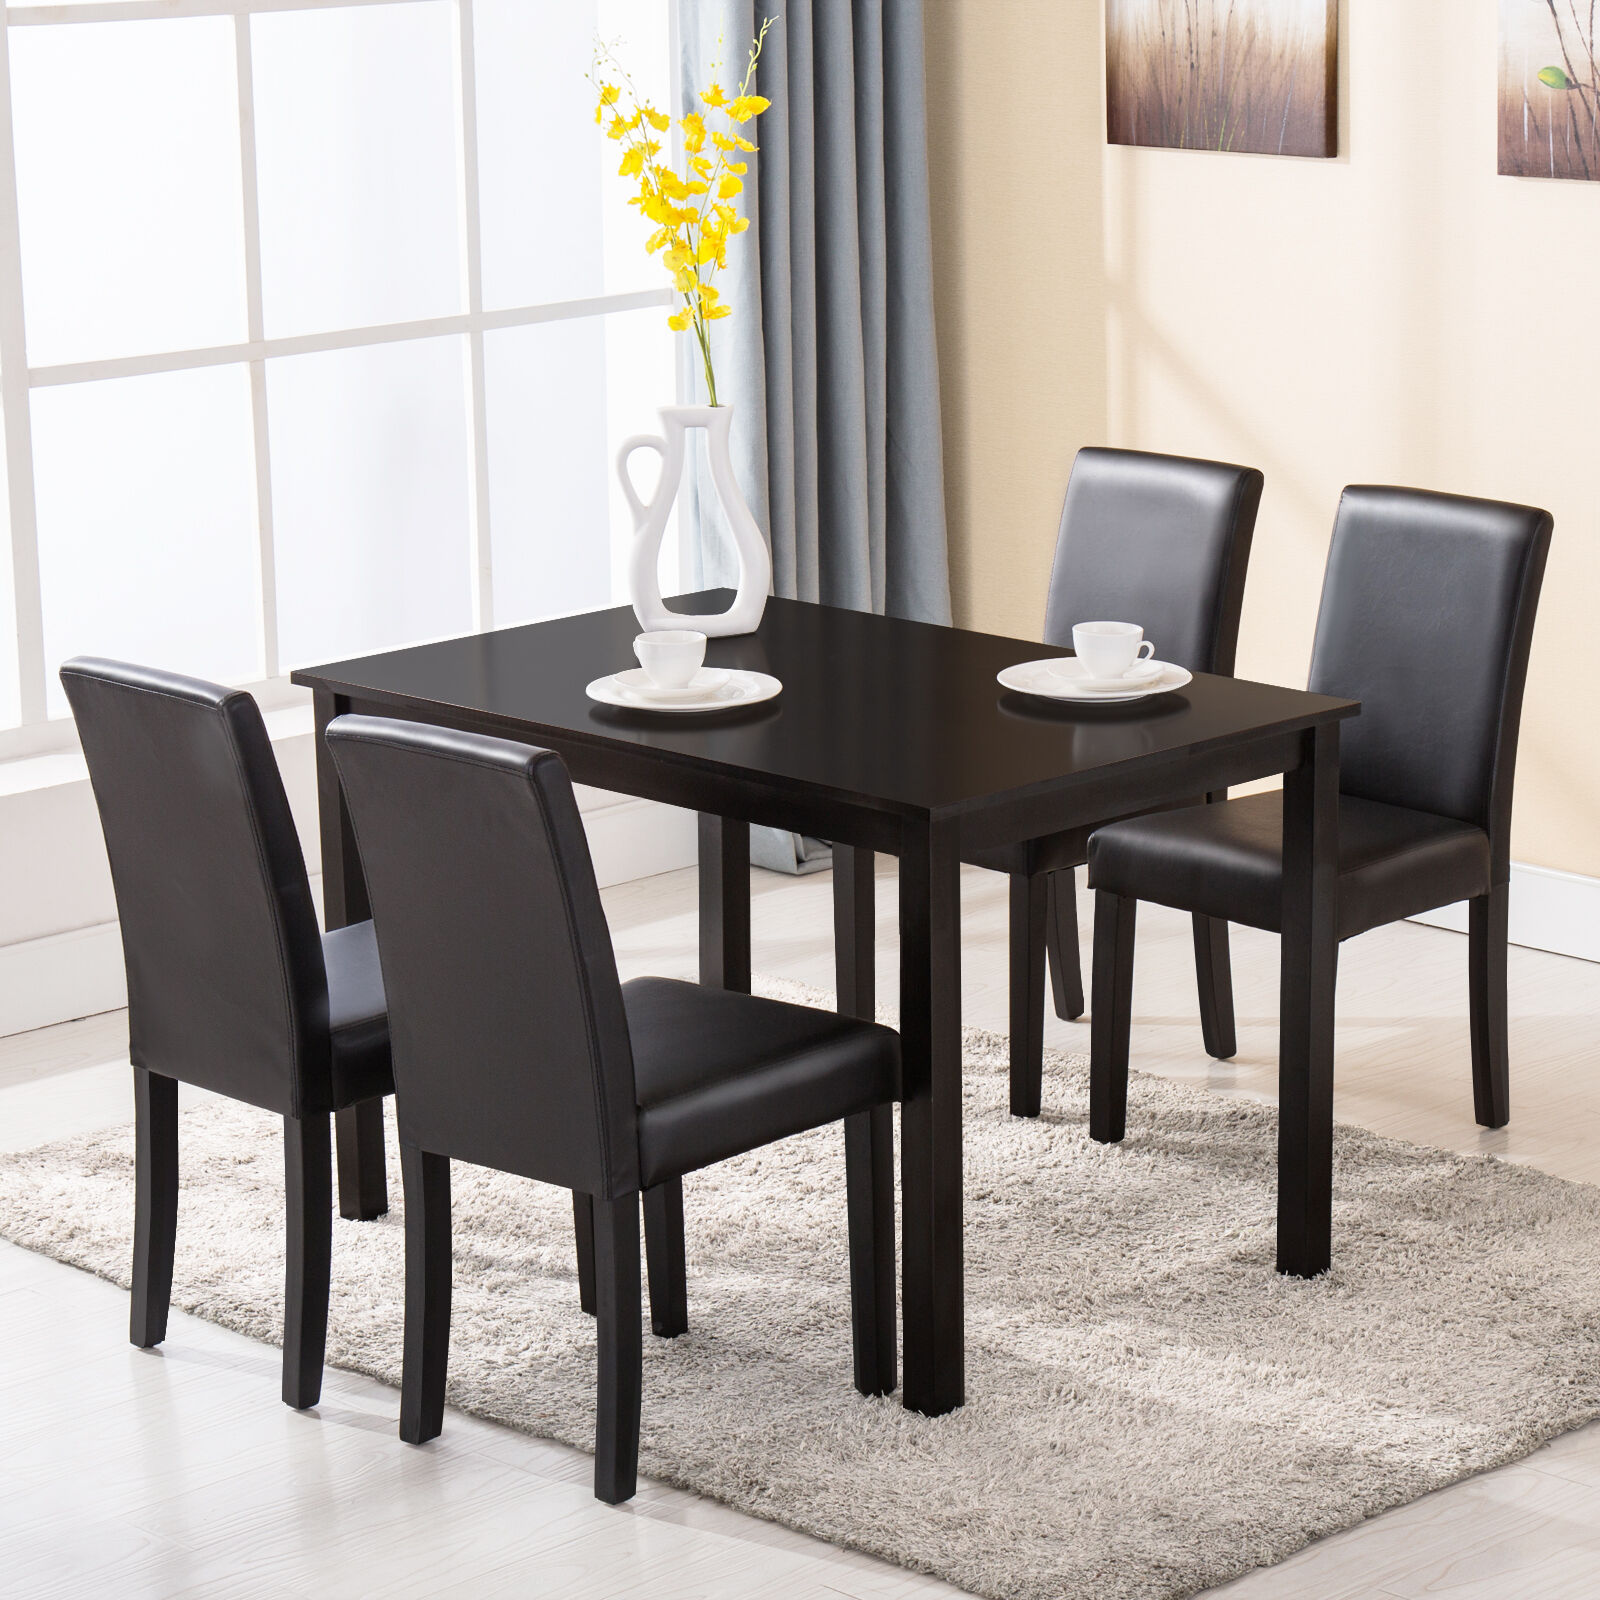 5 piece dining table set 4 chairs wood kitchen dinette for Kitchen dinette sets